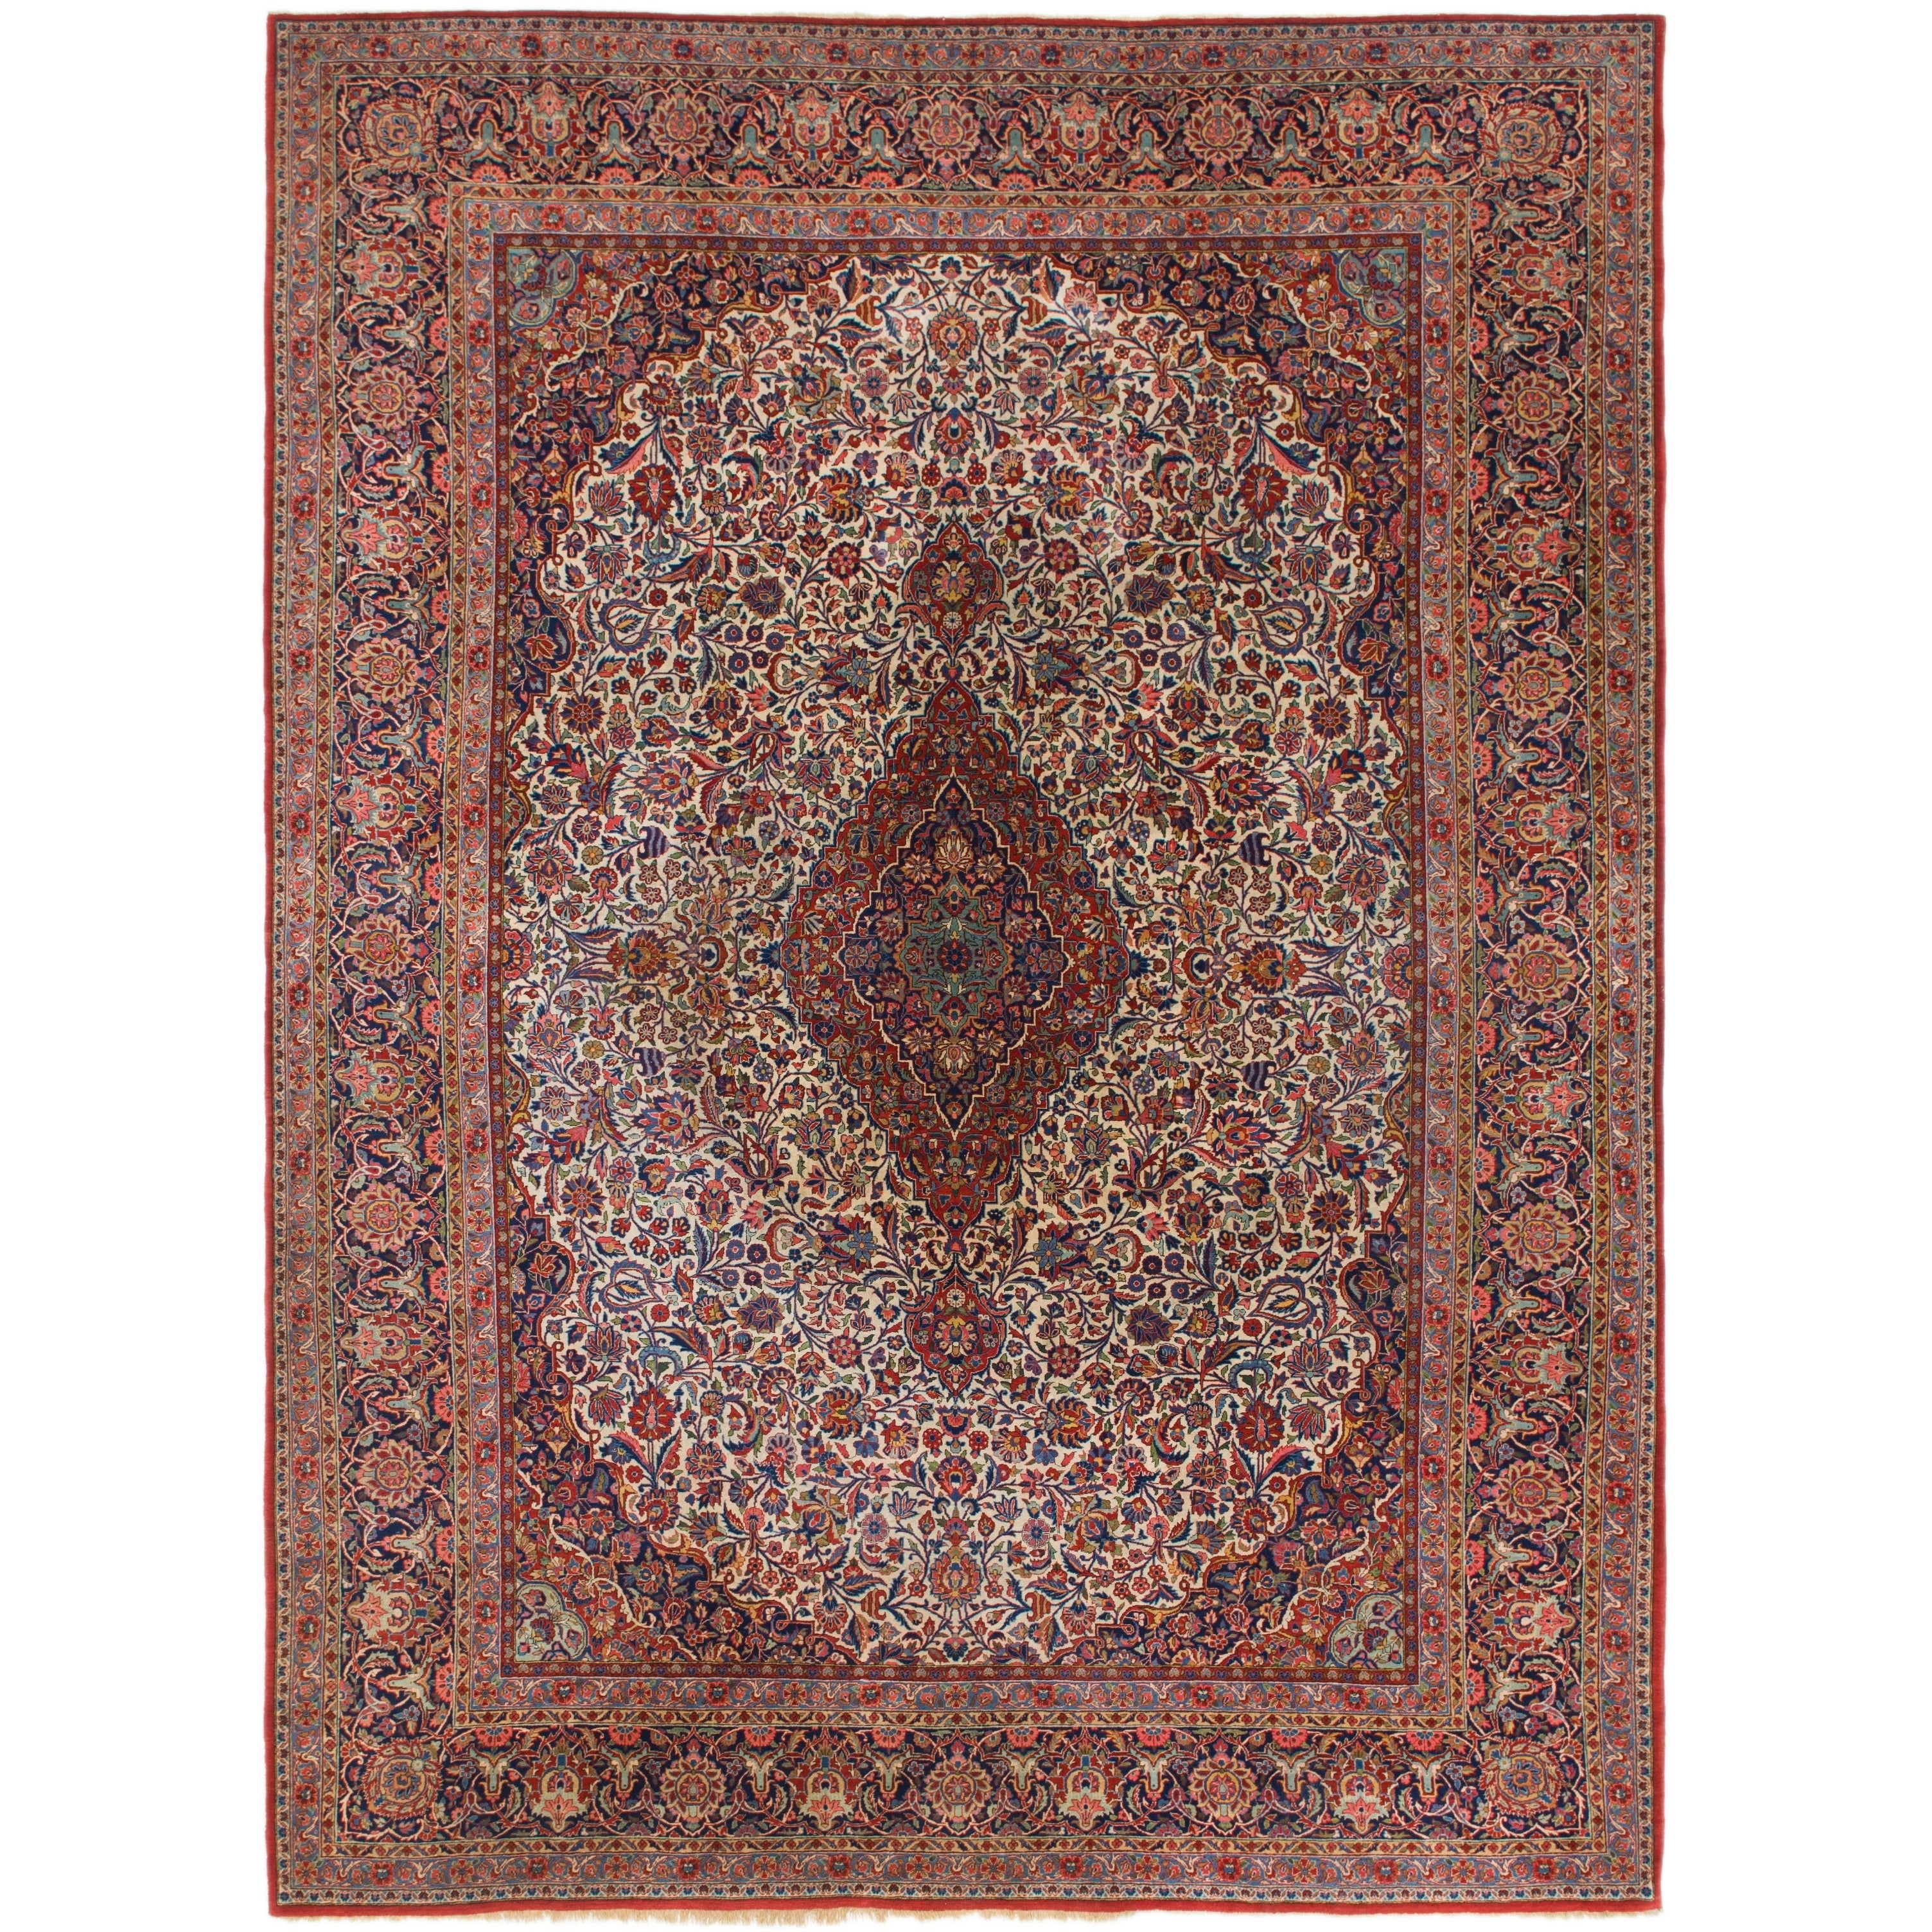 Hand Knotted Kashan Antique Kork Wool Area Rug - 8 8 x 12 2 (Ivory - 8 8 x 12 2)